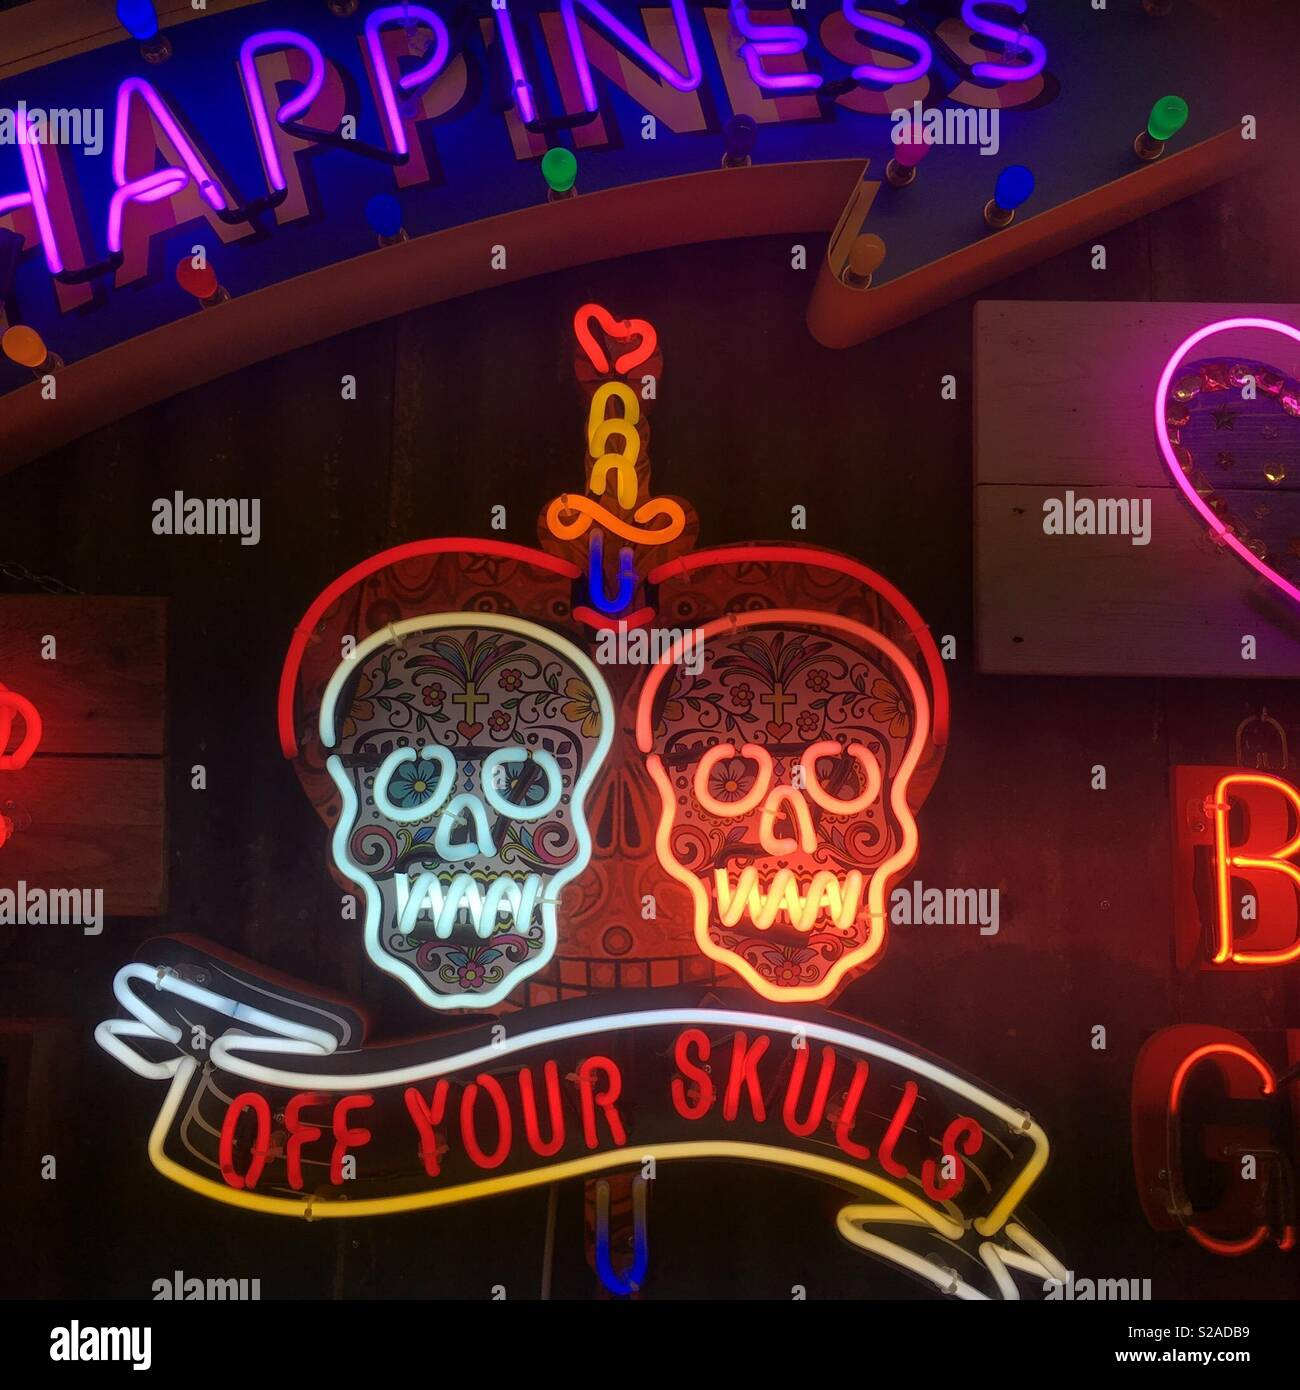 Off your skulls neon sign. - Stock Image